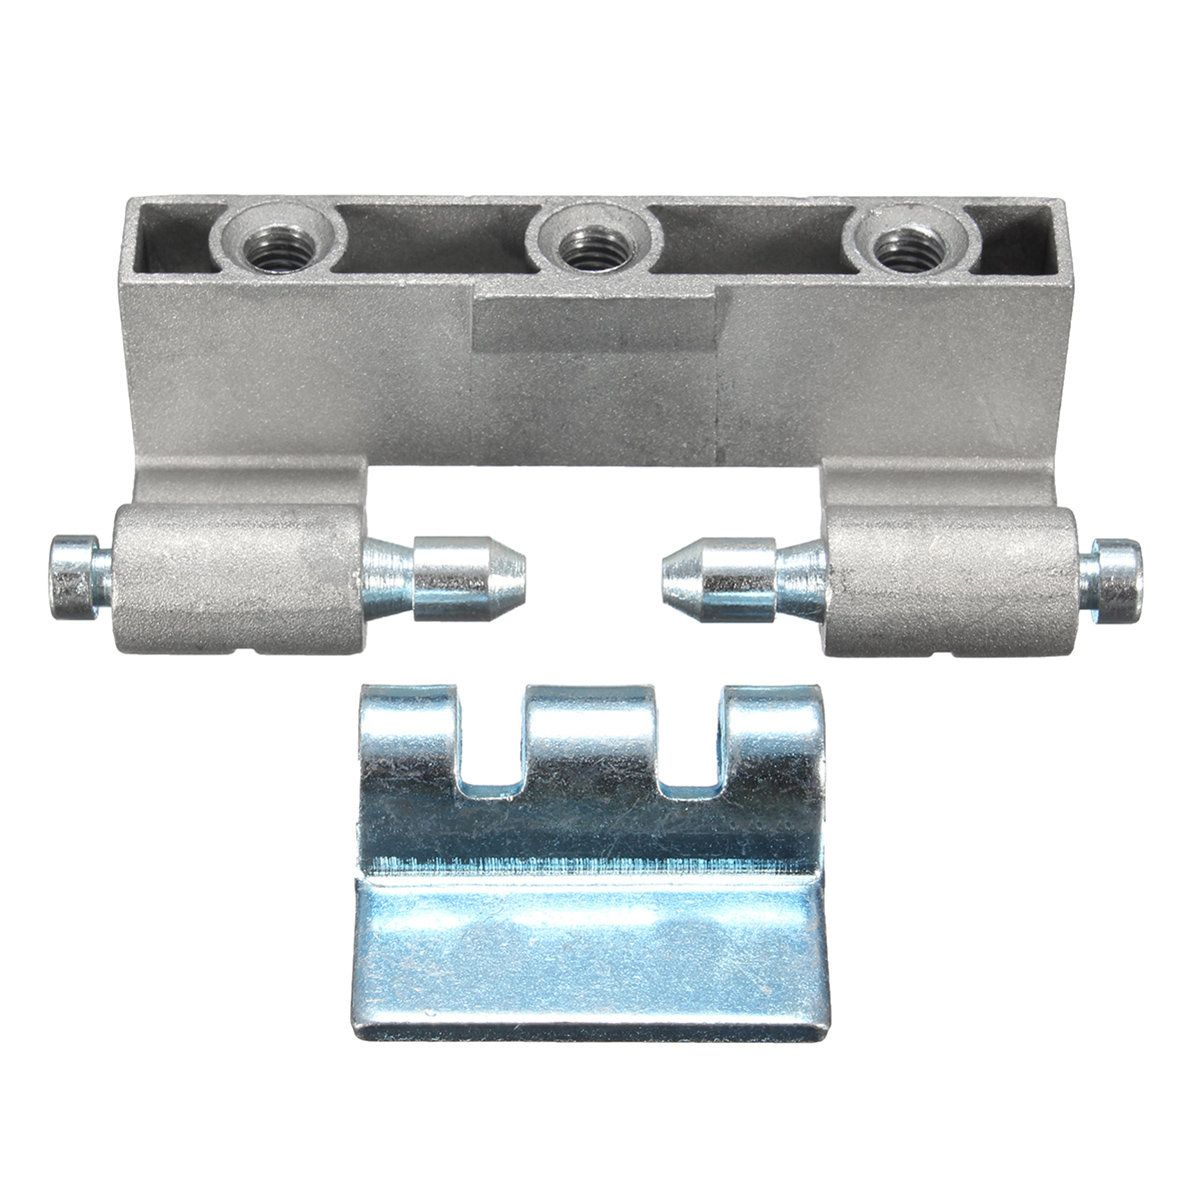 Zinc Alloy Dark Hinge For Distributor Box Switchgear Cabinet Hinged Clamps Wiring Harness Cupboard Door